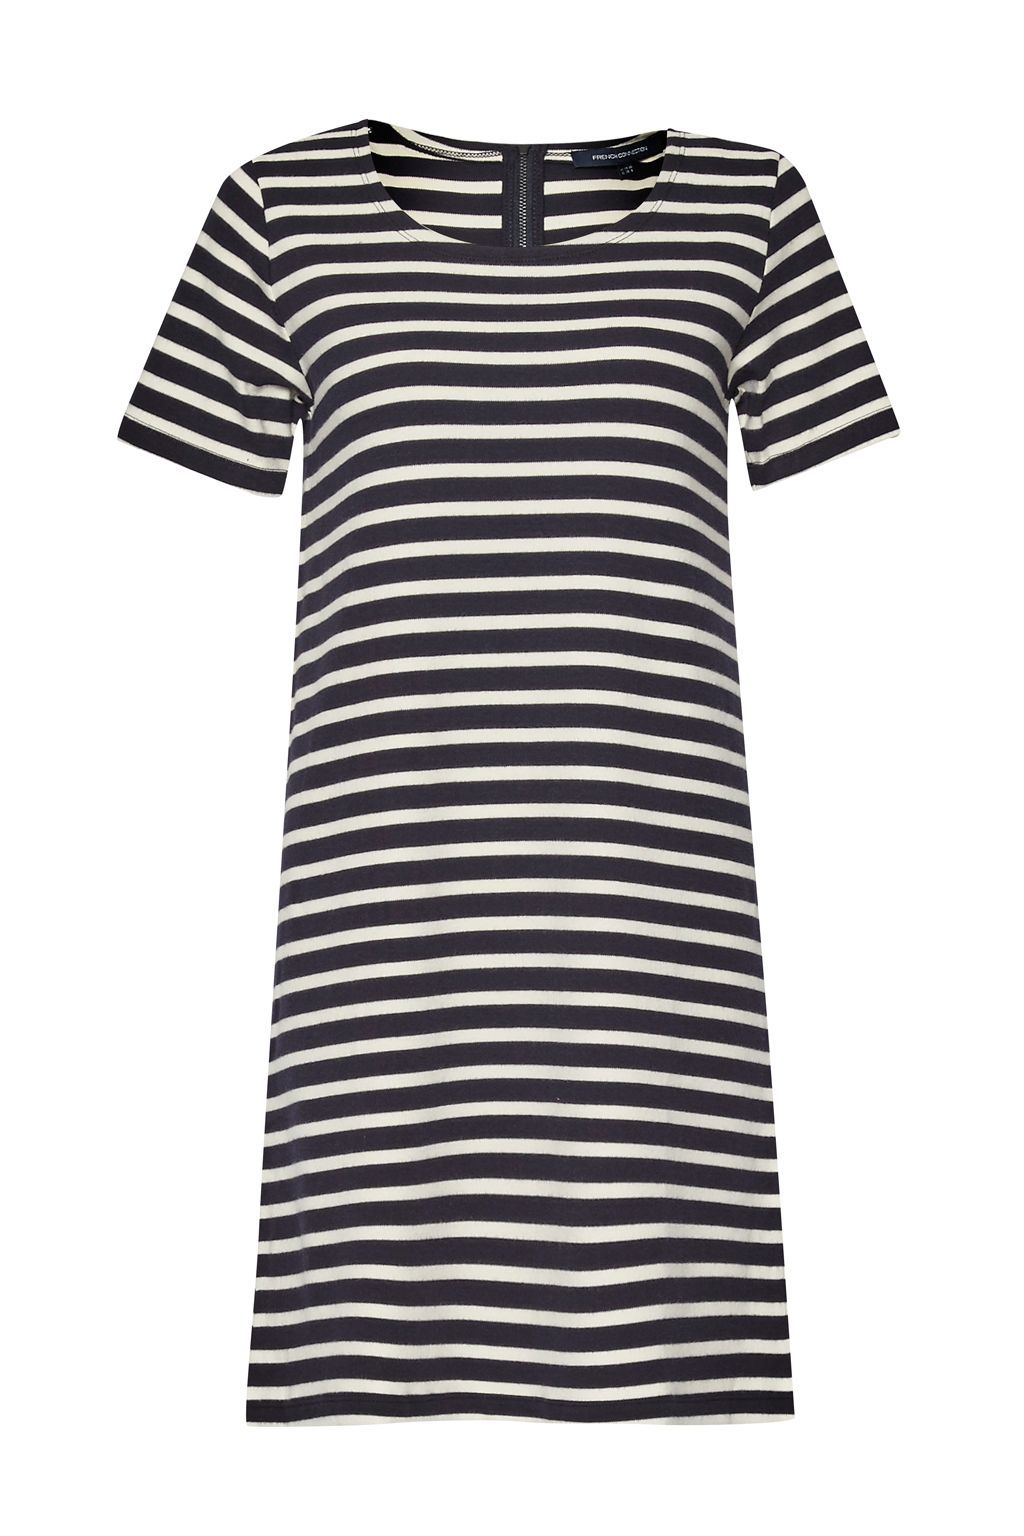 Annie Striped T Shirt Dress, Blue - style: a-line; length: mid thigh; neckline: round neck; pattern: horizontal stripes; secondary colour: white; predominant colour: black; occasions: casual; fit: body skimming; fibres: cotton - 100%; sleeve length: short sleeve; sleeve style: standard; trends: monochrome; pattern type: fabric; texture group: jersey - stretchy/drapey; season: s/s 2016; wardrobe: basic